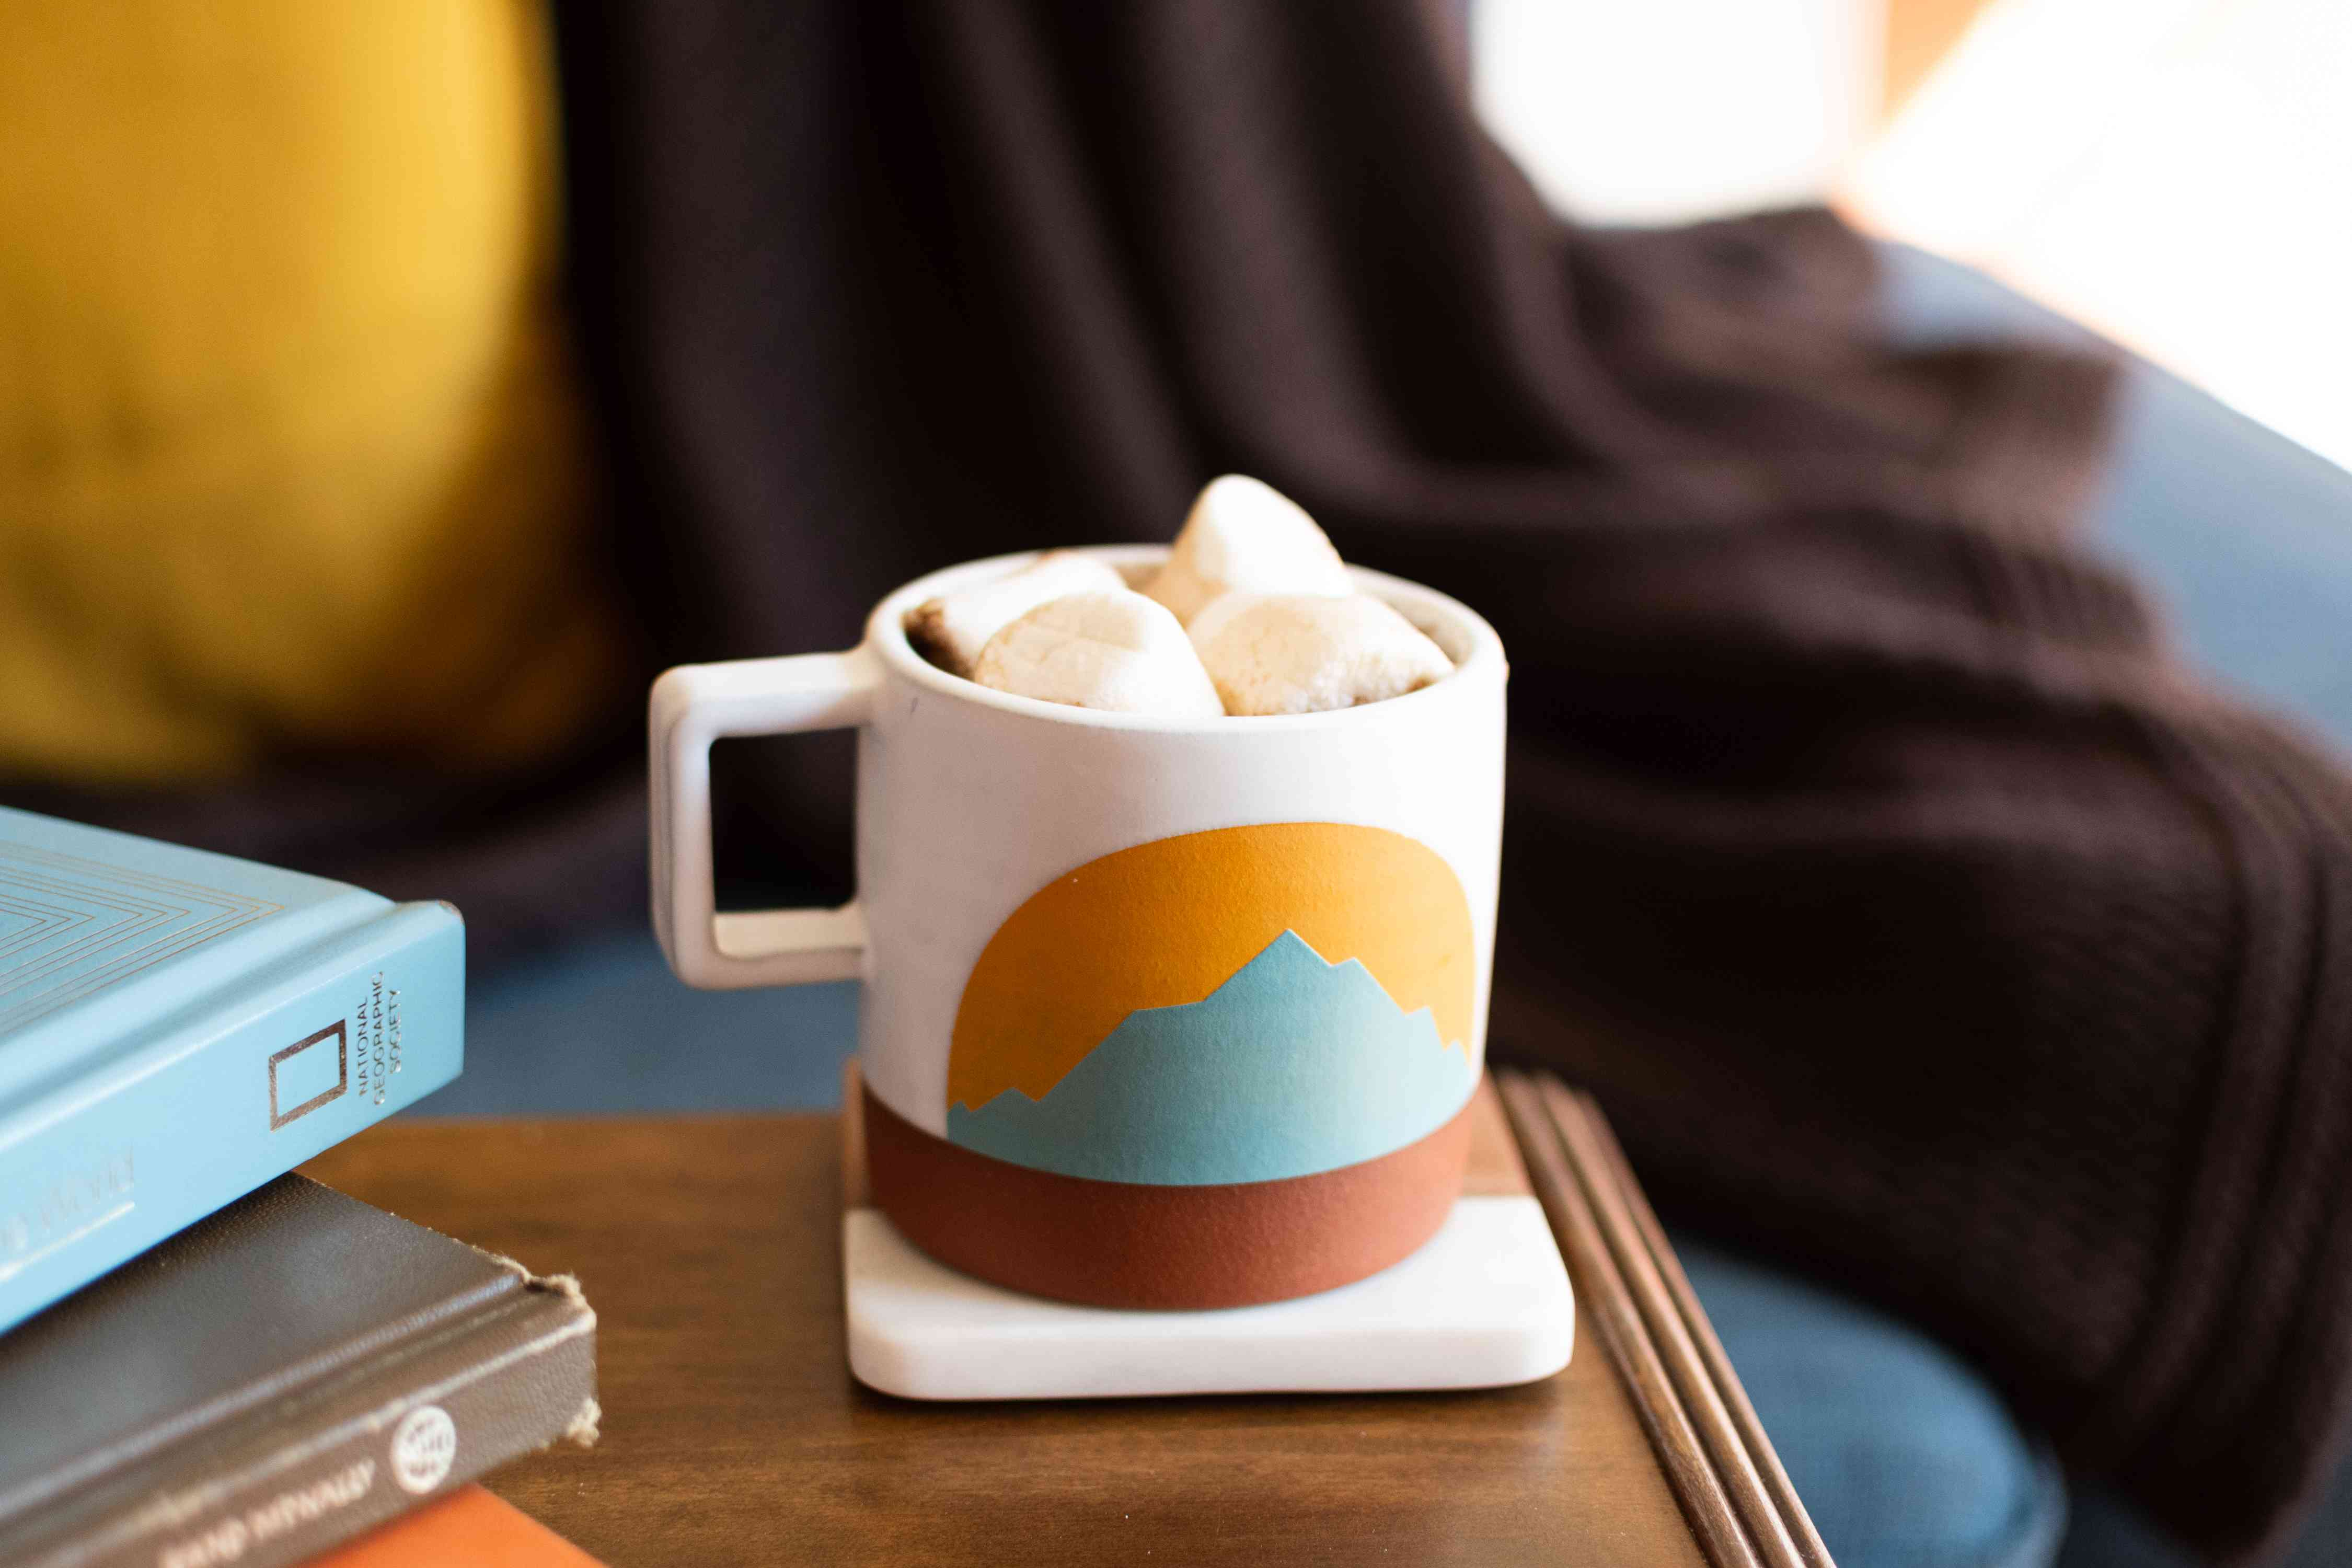 Marshmallows on top of hot beverage in painted mug with mountain-scape closeup